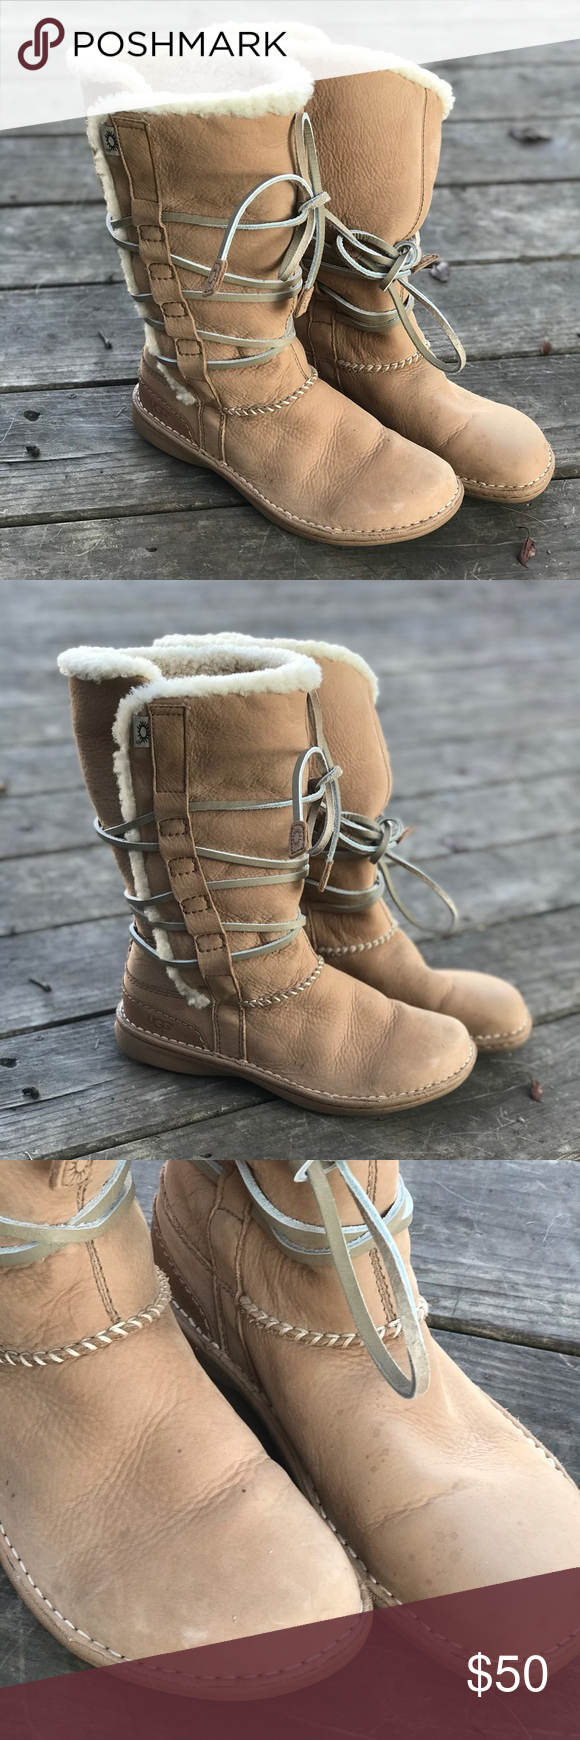 Cute tie up UGG boots. | Ugg boots